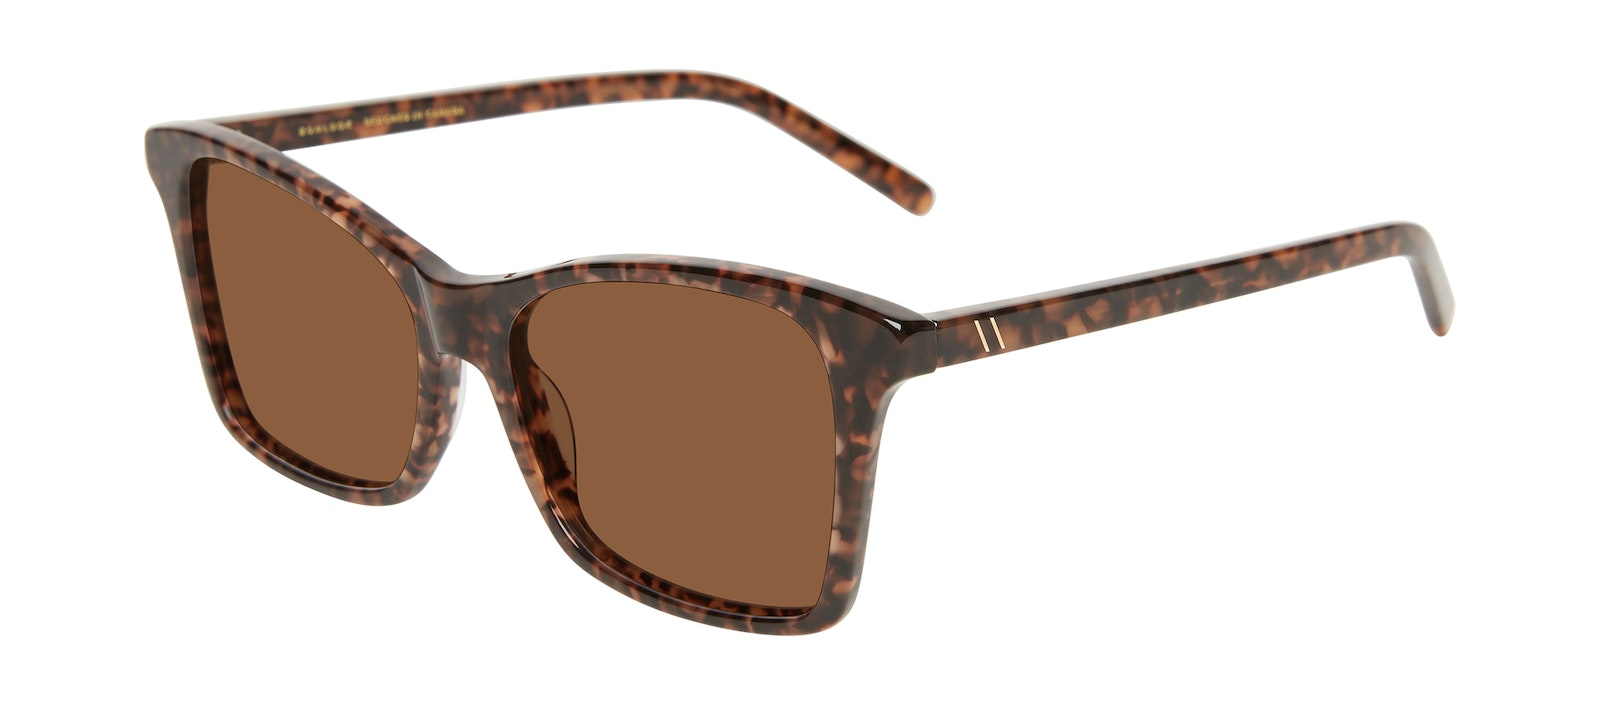 Affordable Fashion Glasses Square Sunglasses Women Cadence Leopard Tilt